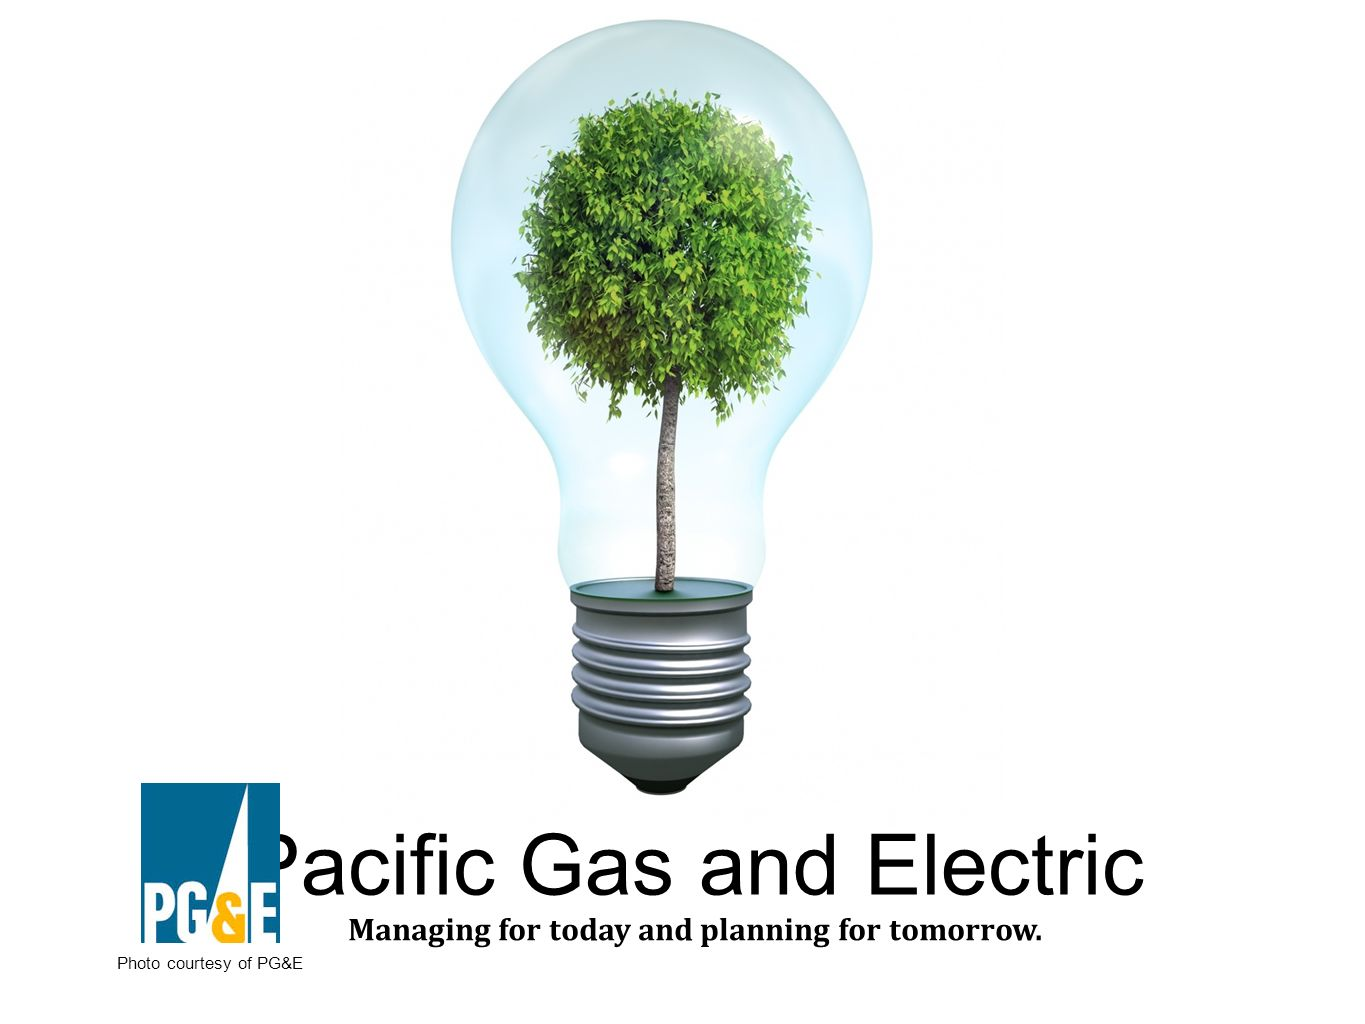 Pacific Gas and Electric Managing for today and planning for tomorrow. Photo courtesy of PG&E